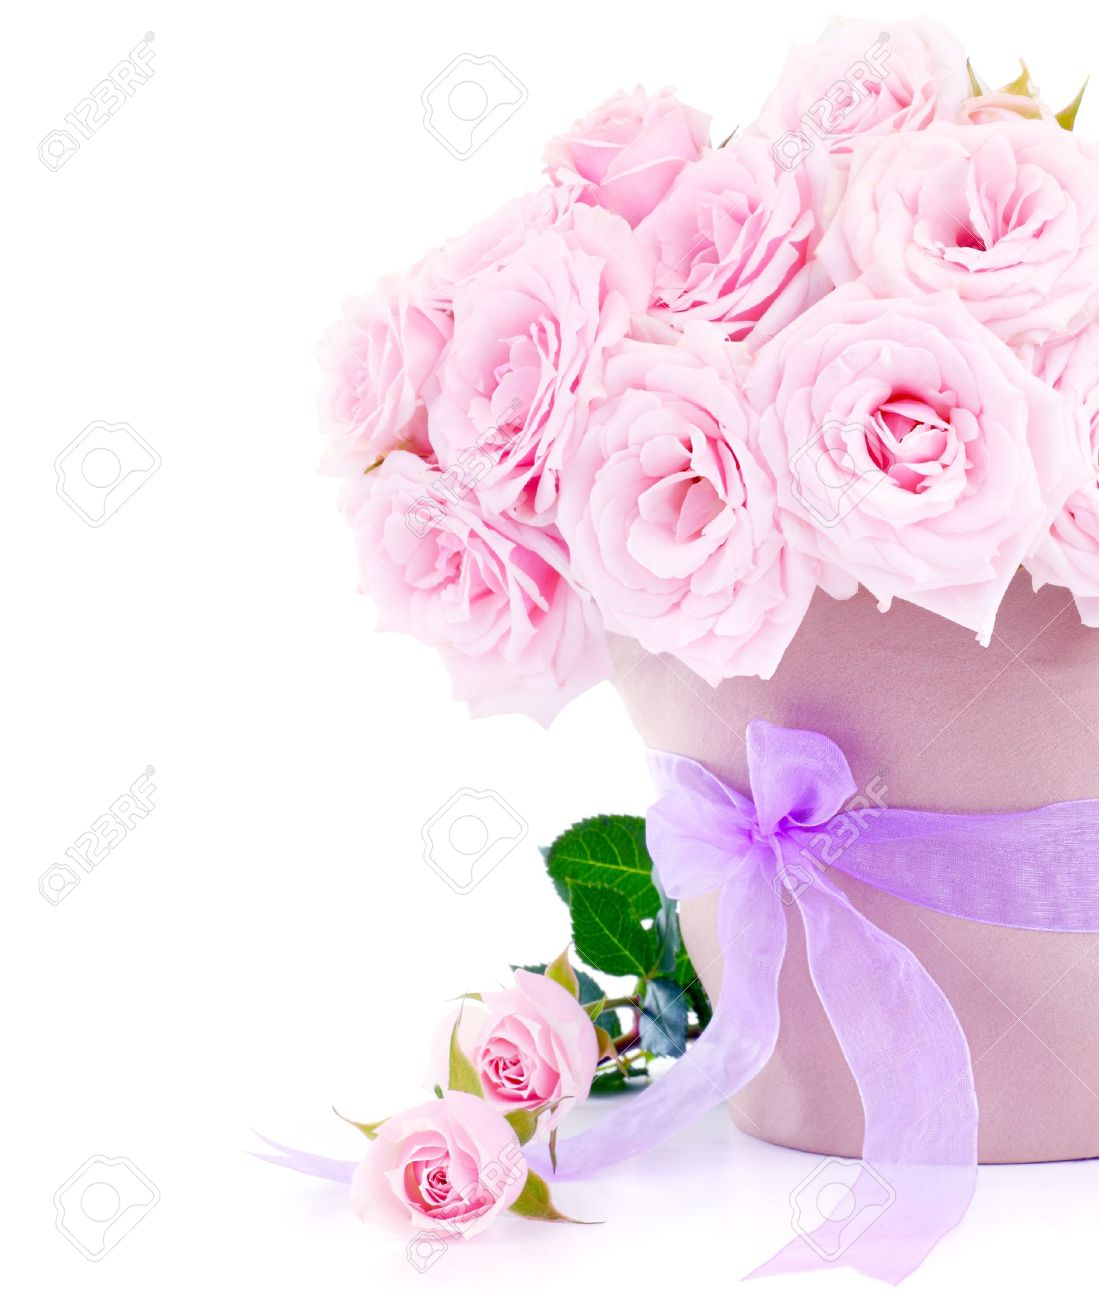 Pot of pink fresh roses, beautiful flowers isolated on white background - 9763263